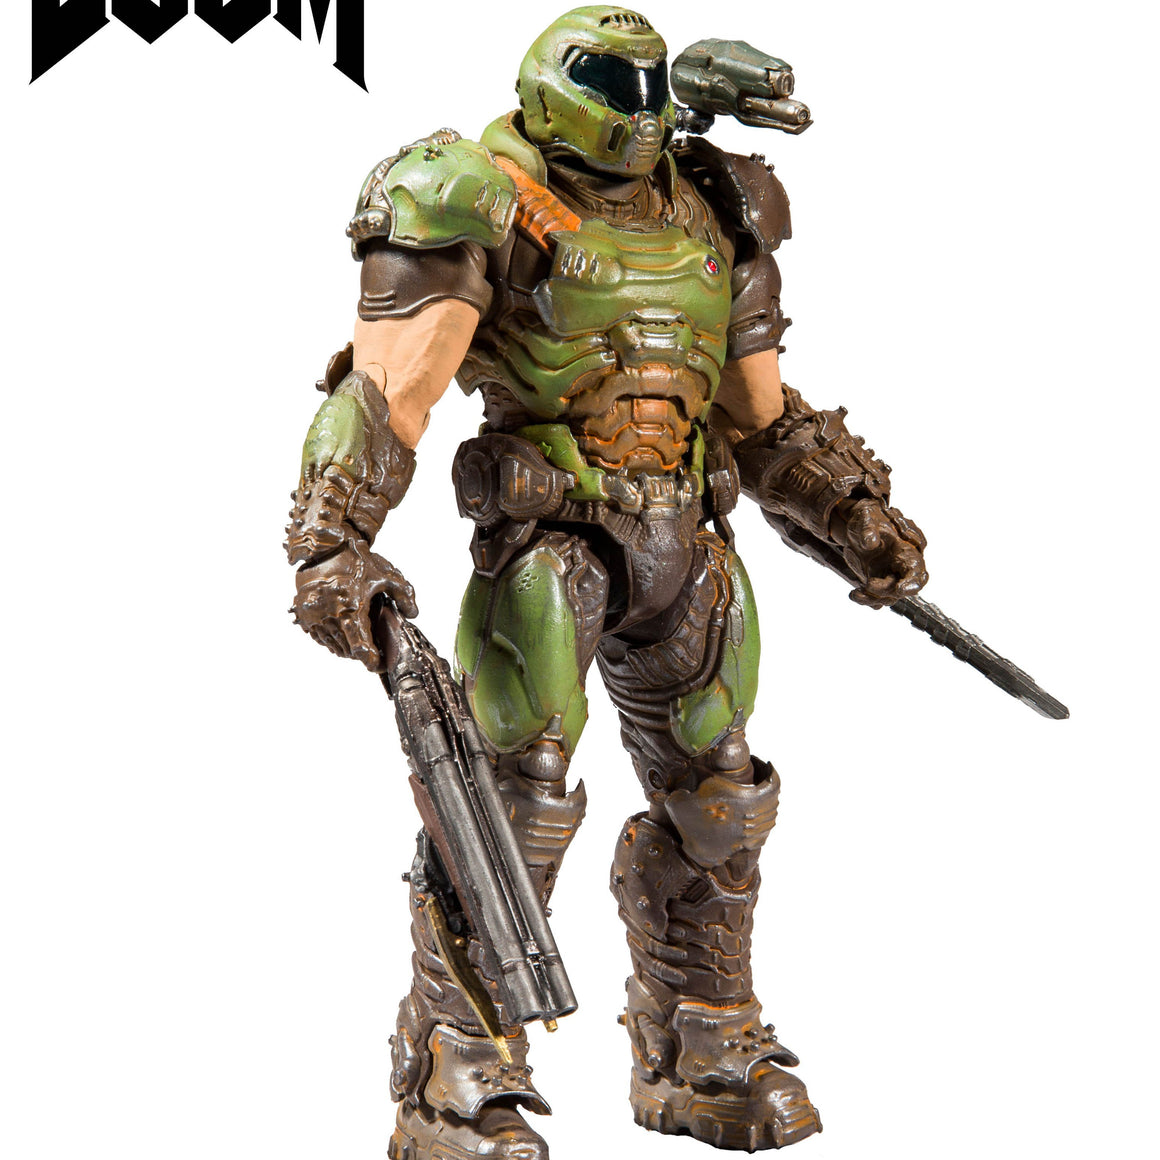 Doom Slayer Action Figure - SEPTEMBER 2019